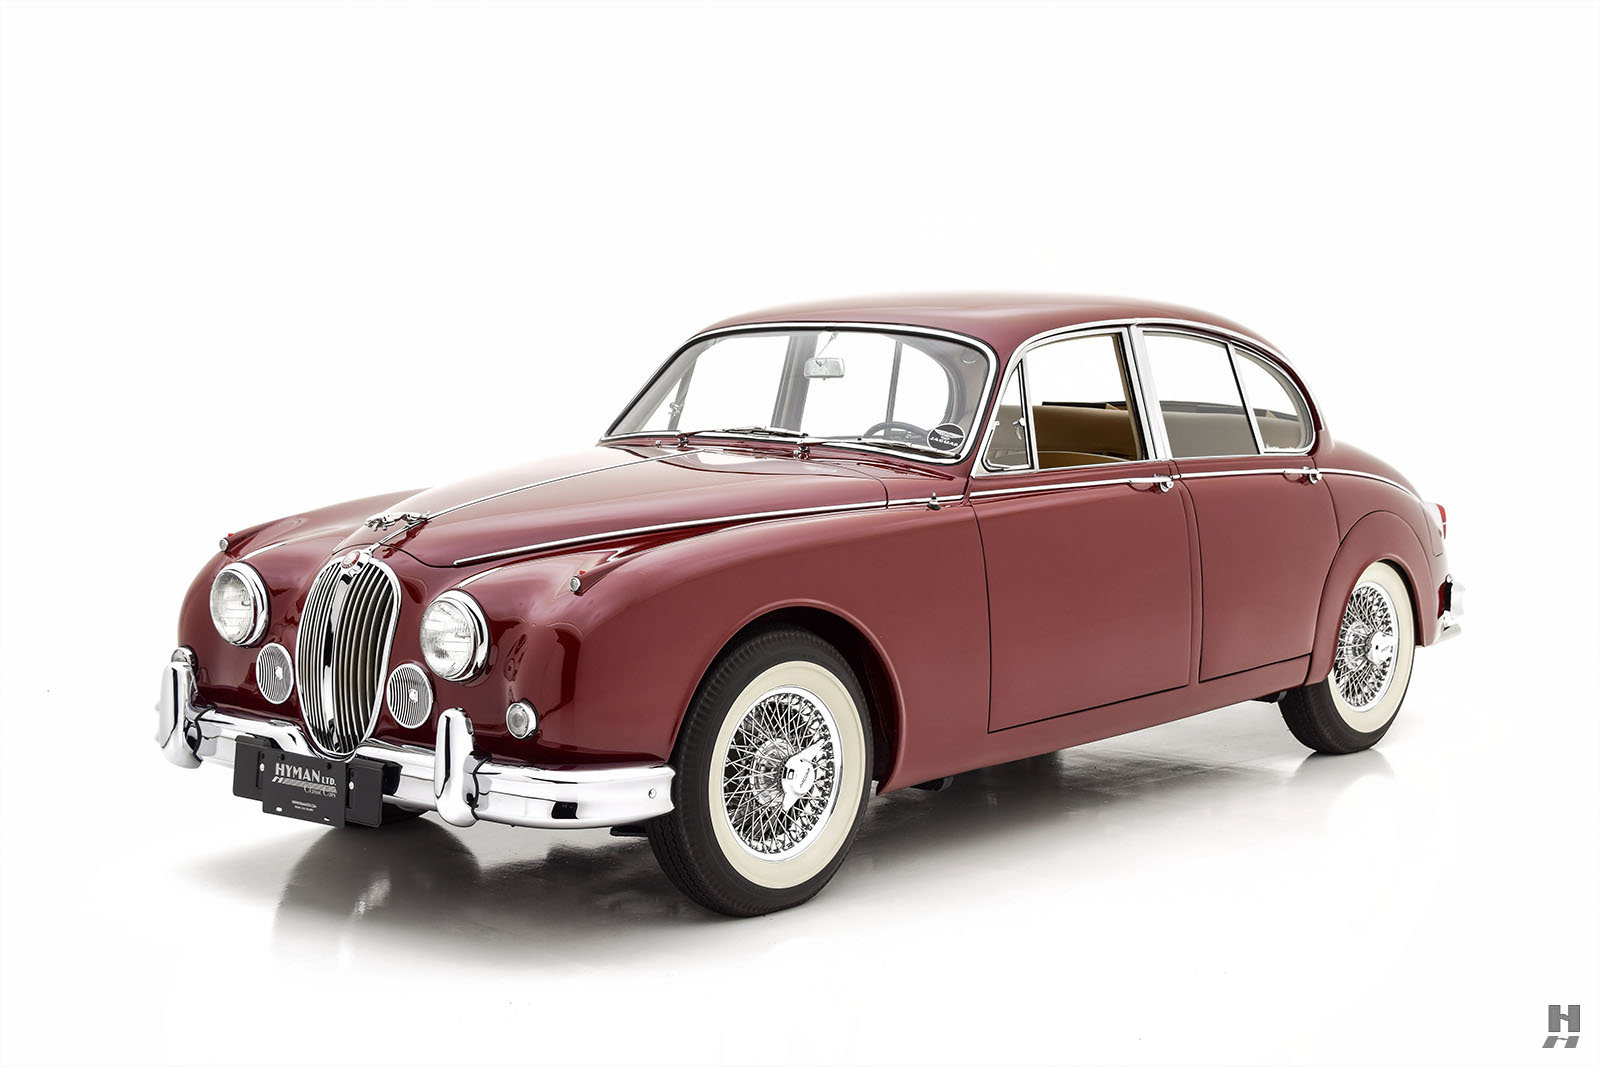 1962 JAGUAR MARK II 3.8 SALOON For Sale (picture 1 of 6)